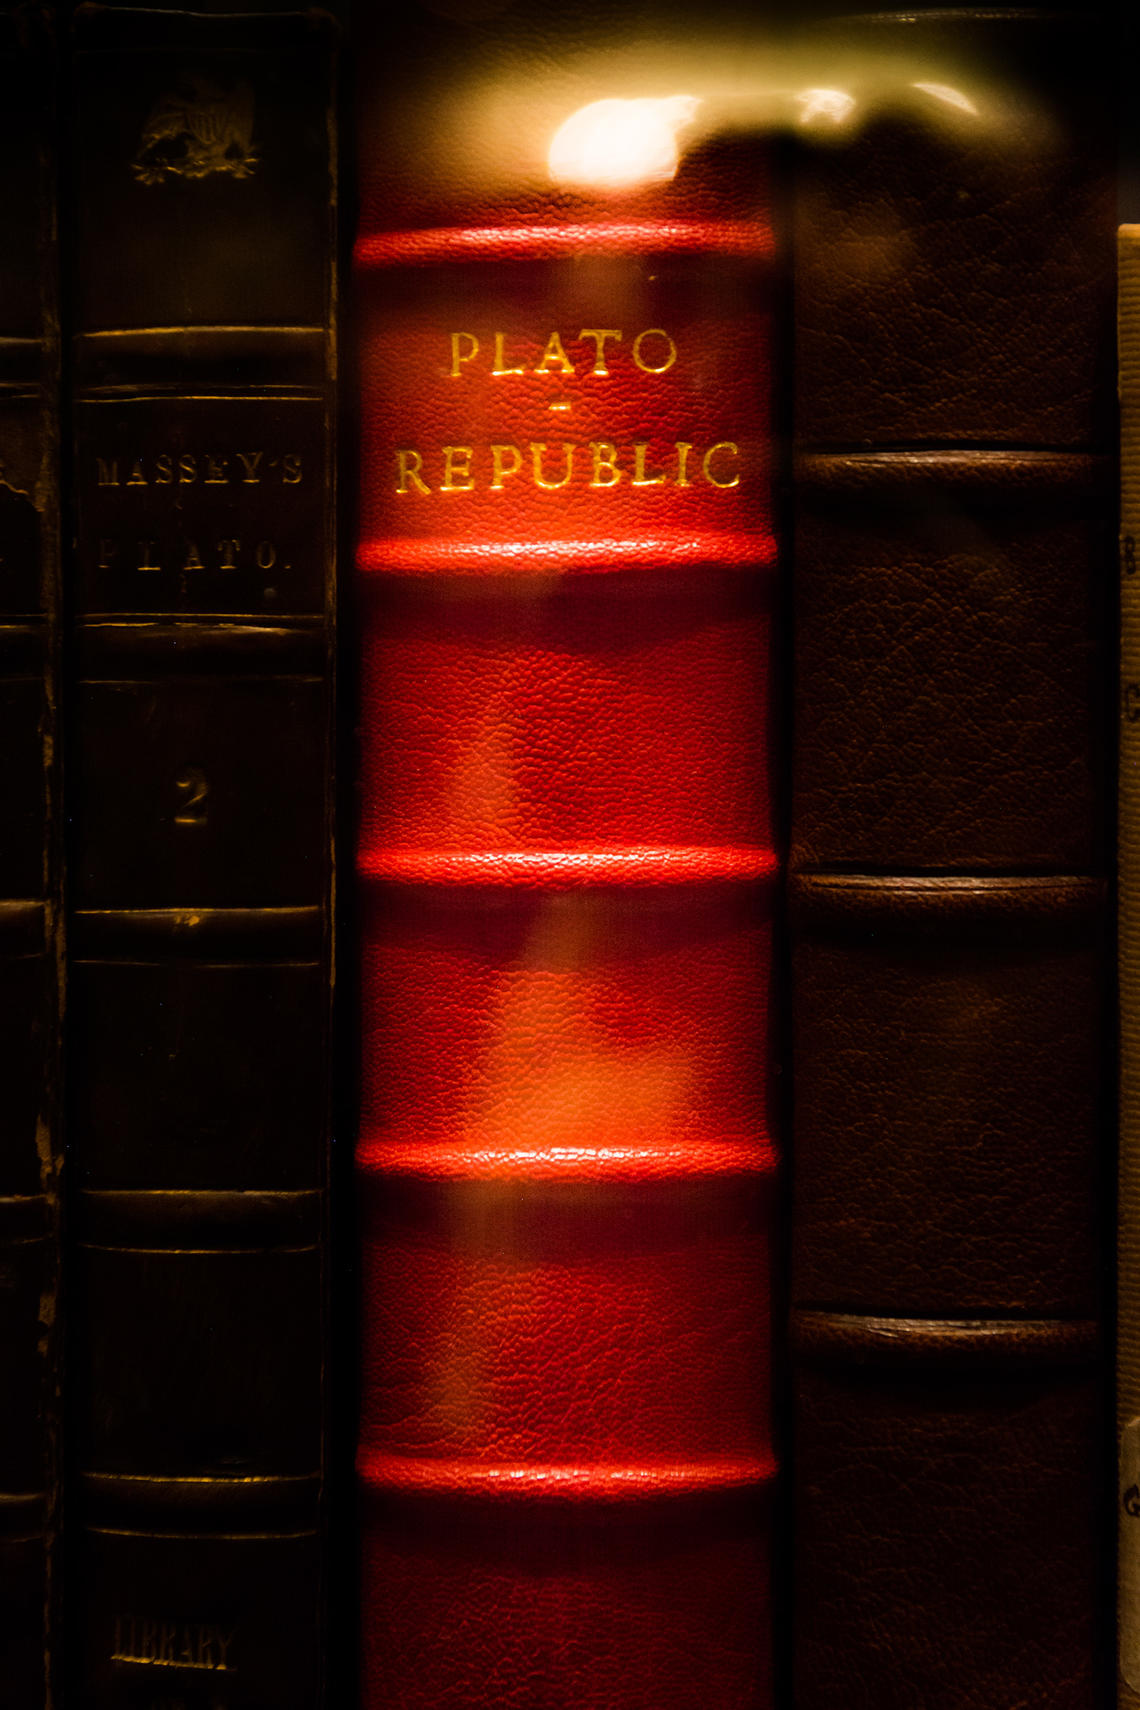 Plato's Republic on a shelf